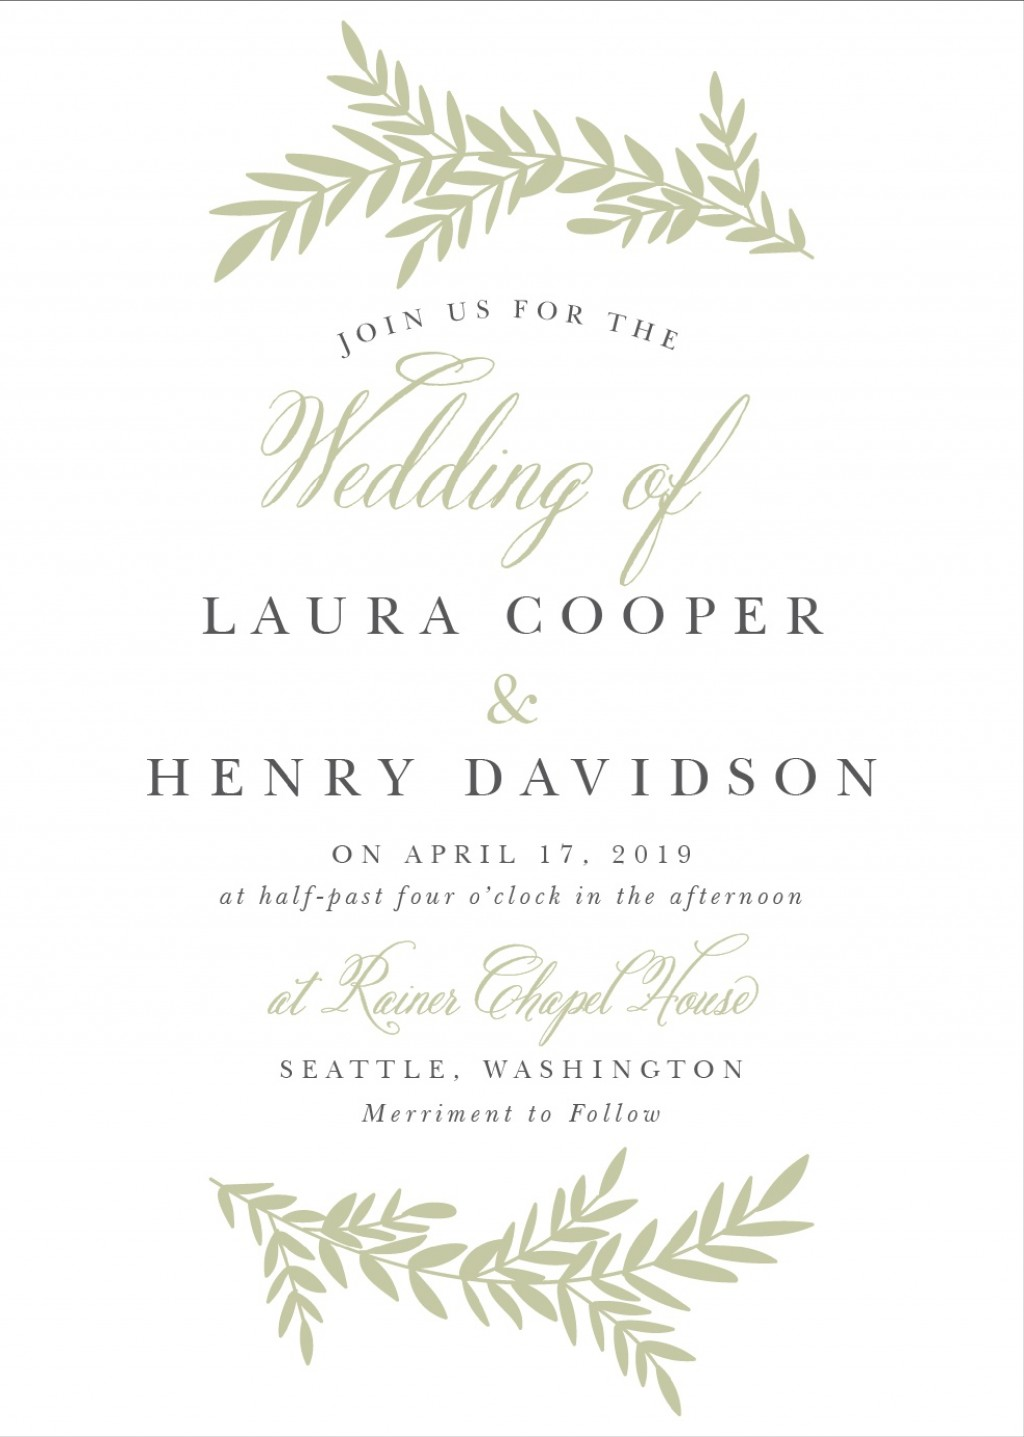 009 Incredible Wedding Invite Wording Template Example  Templates Chinese Invitation Microsoft Word From Bride And Groom InvitingLarge